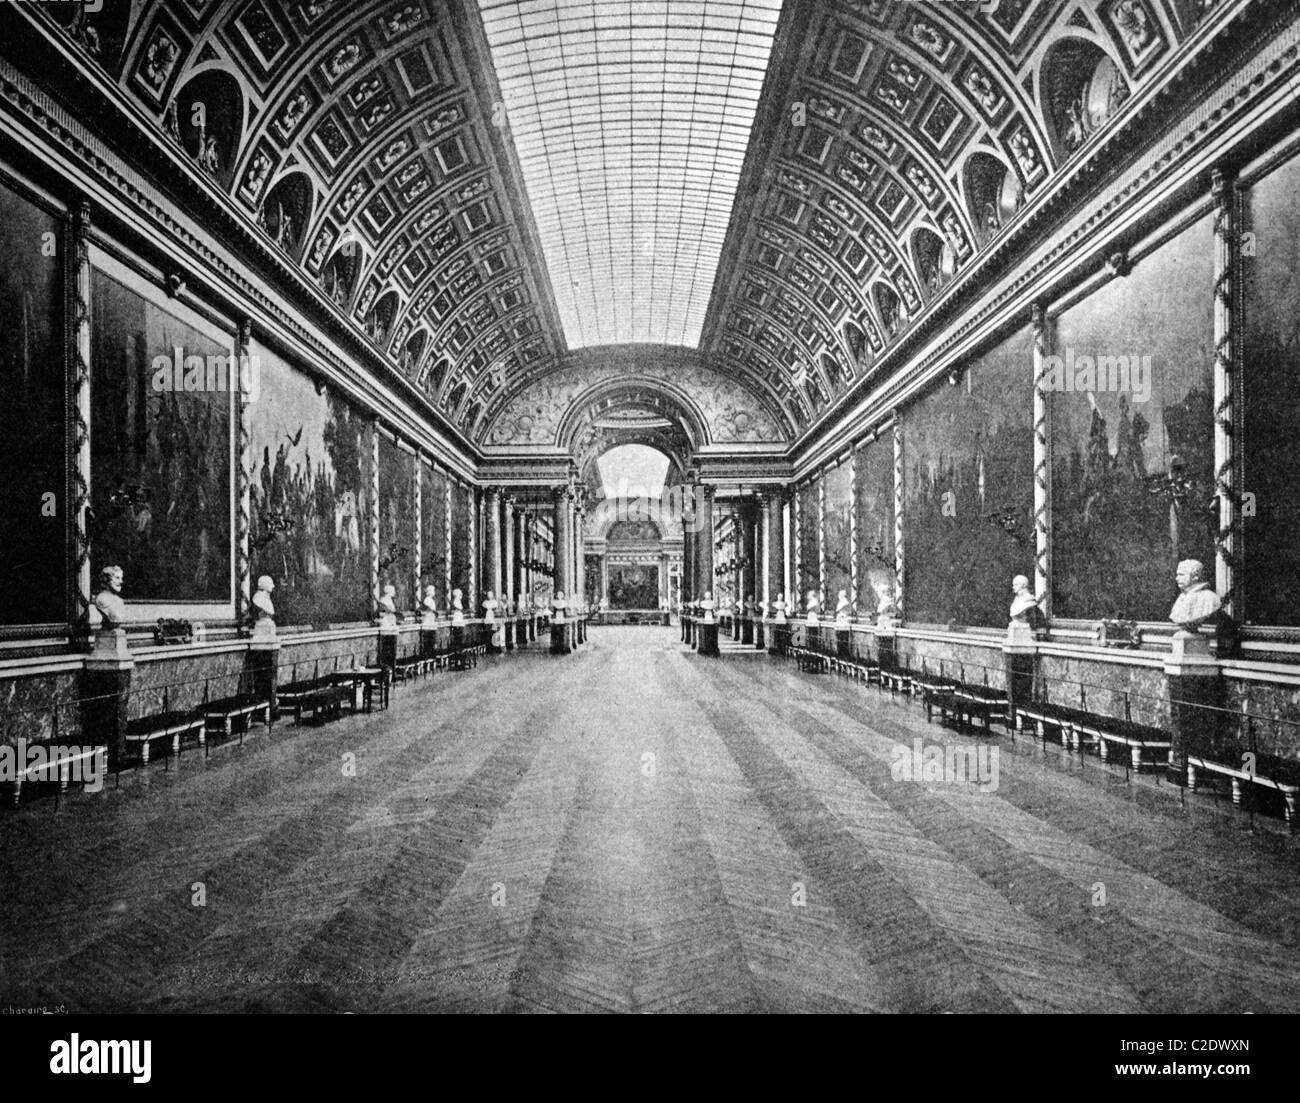 One of the first autotypes of the galerie des batailles in the palace of versailles